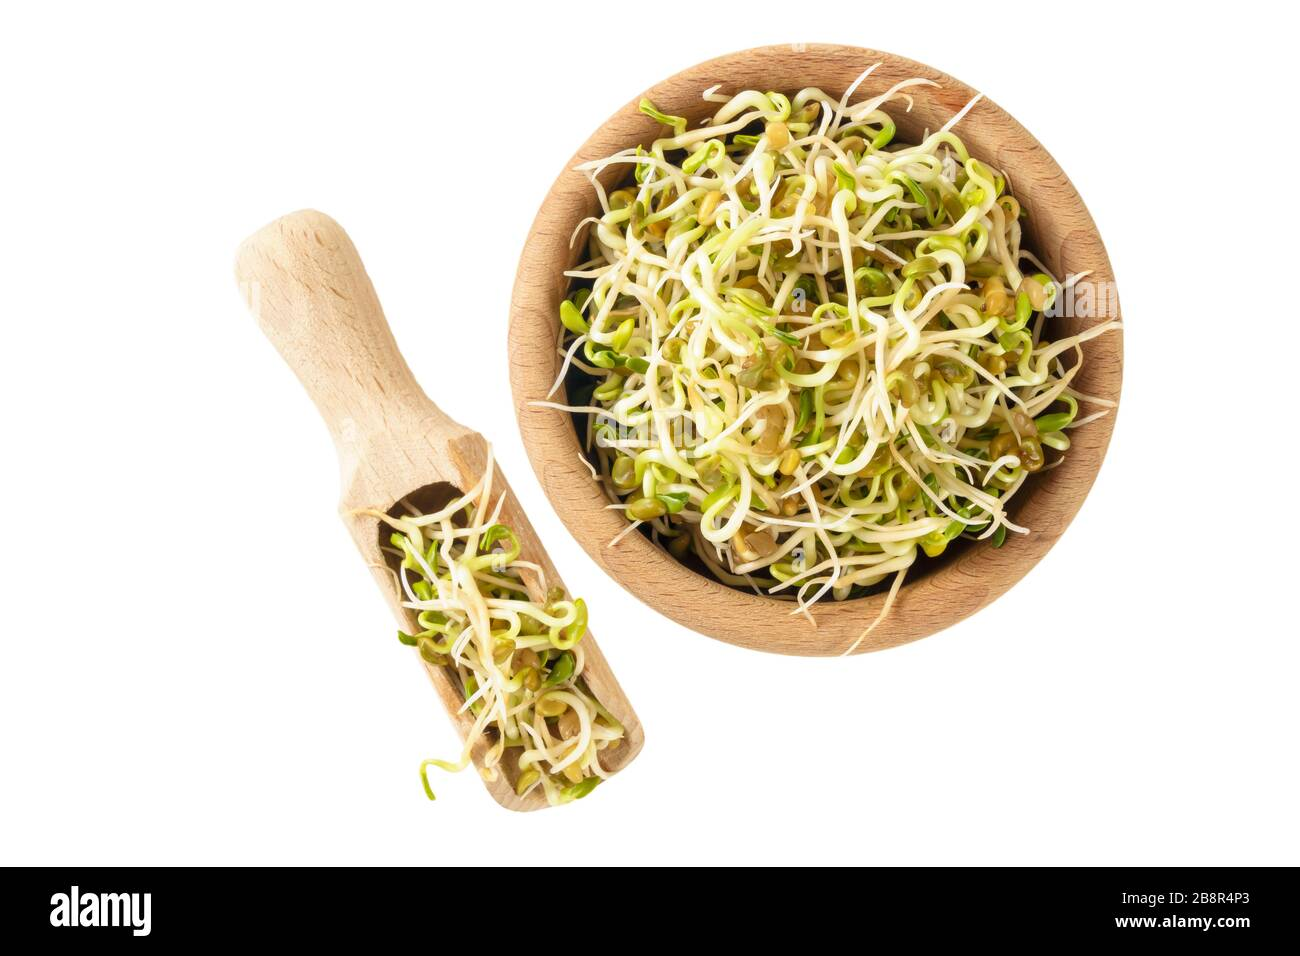 radish sprouts in wooden bowl and scoop isolated on white background. nutrition. food ingredient. Stock Photo